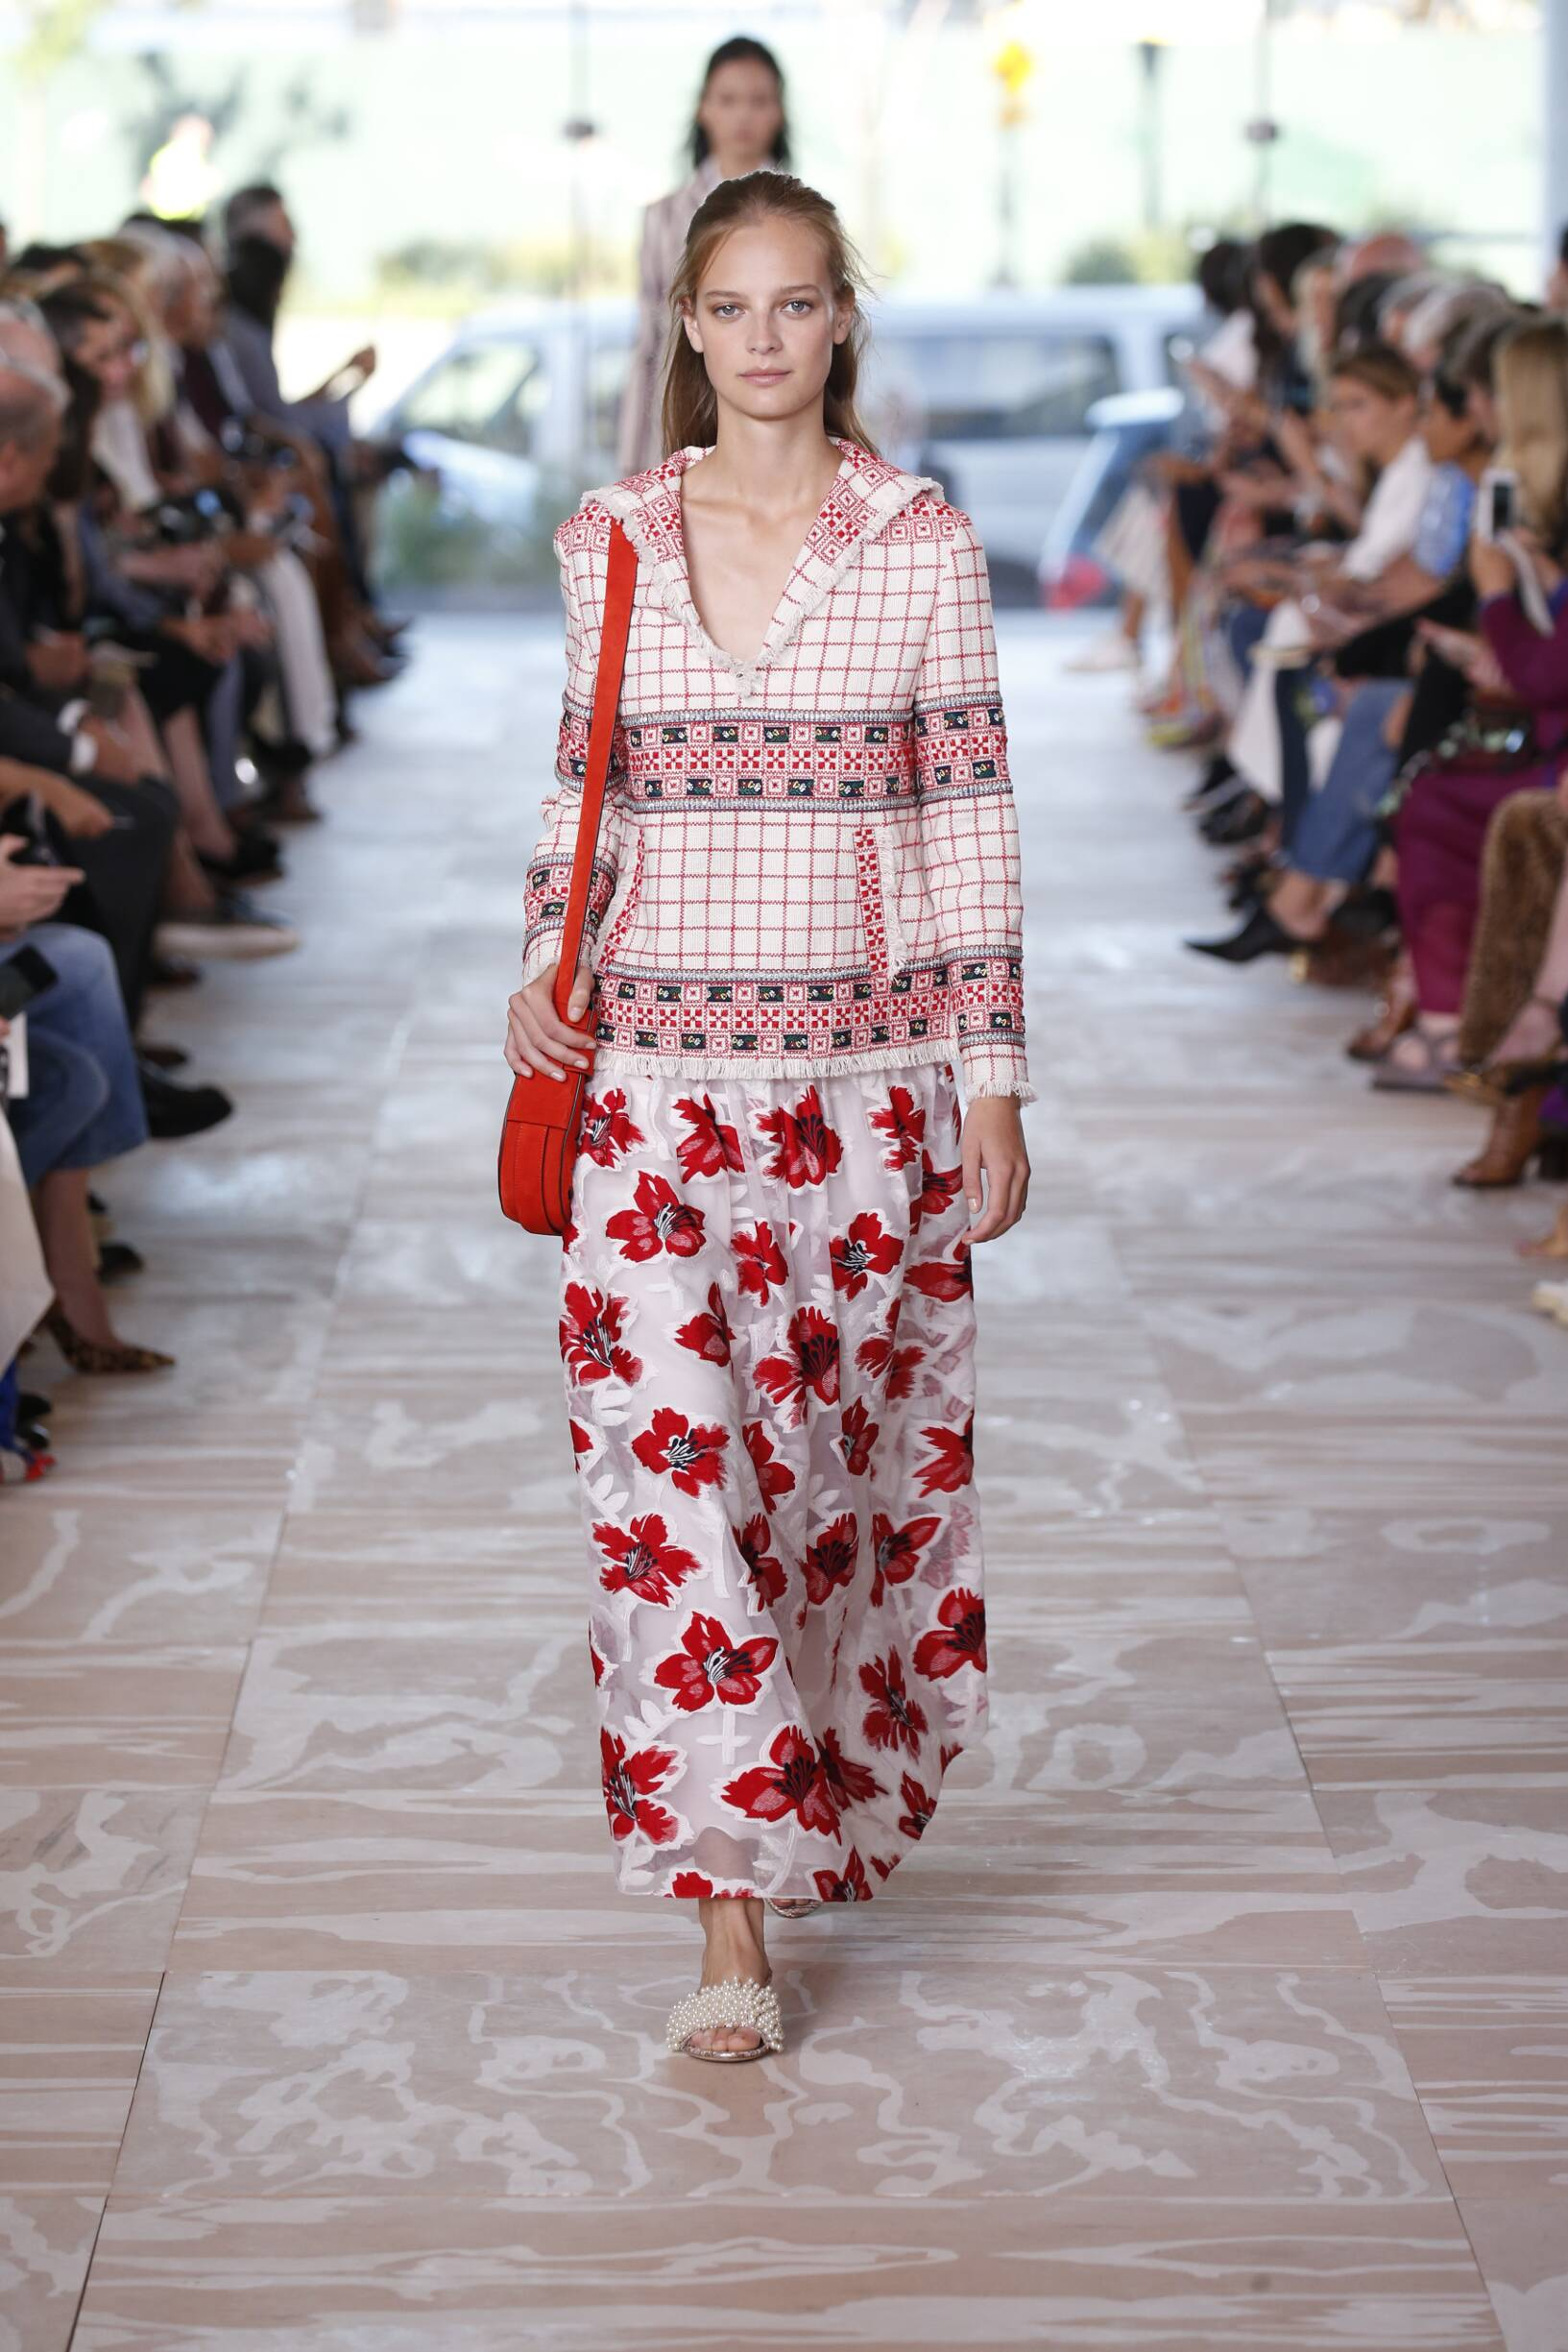 Tory Burch Catwalk